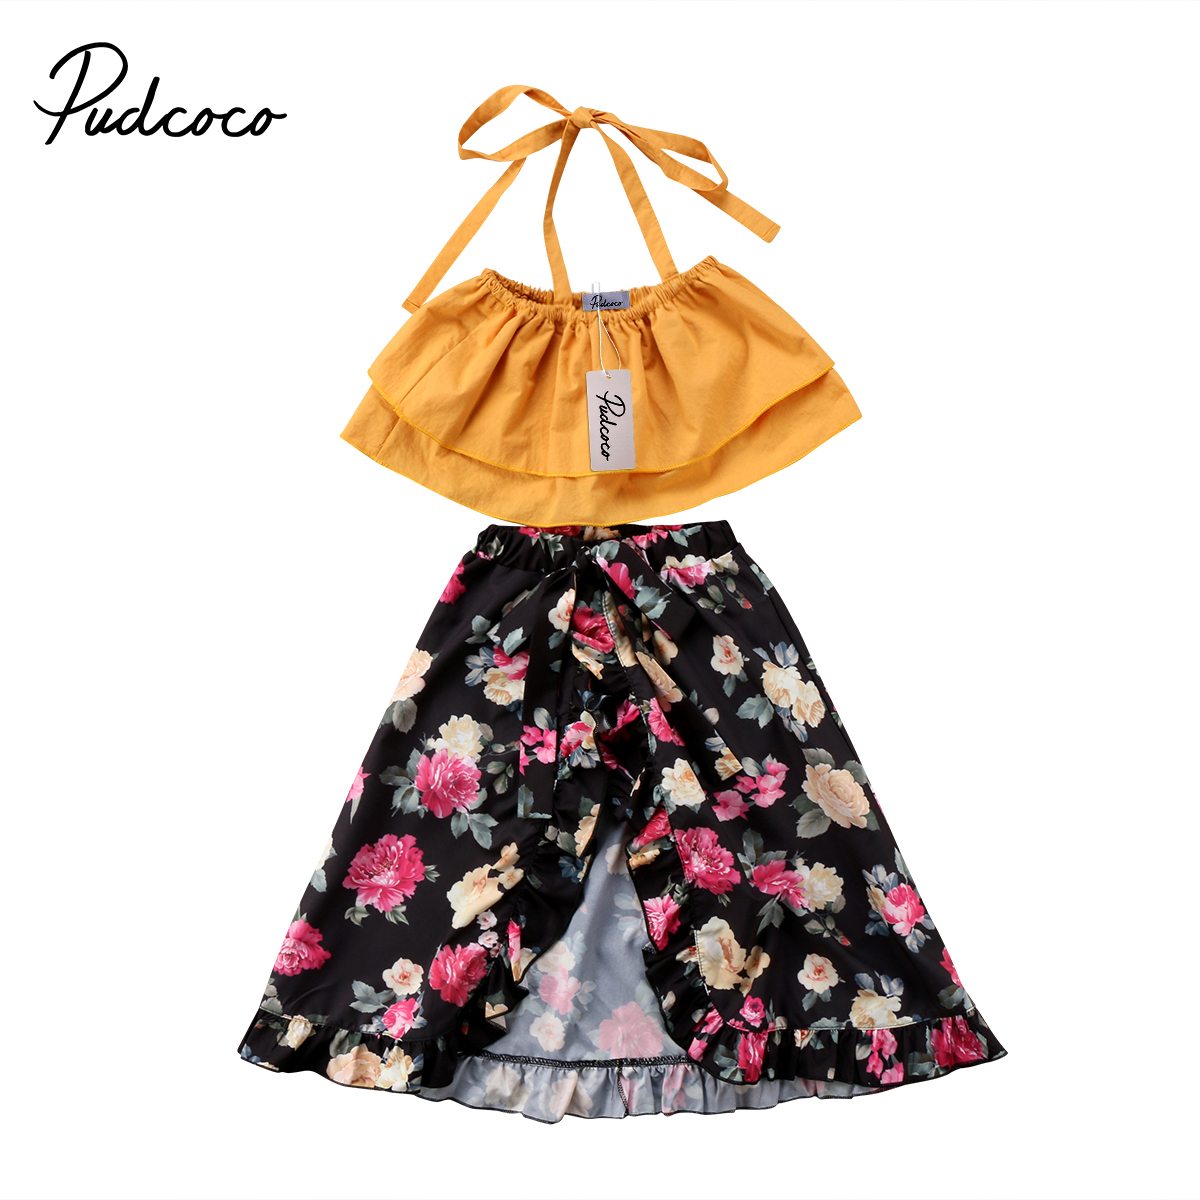 Pudcoco Adorable Toddler Baby Kids Girls Floral Clothing Sets Crop Tops + Flower Skirt 2Pcs Outfits Set